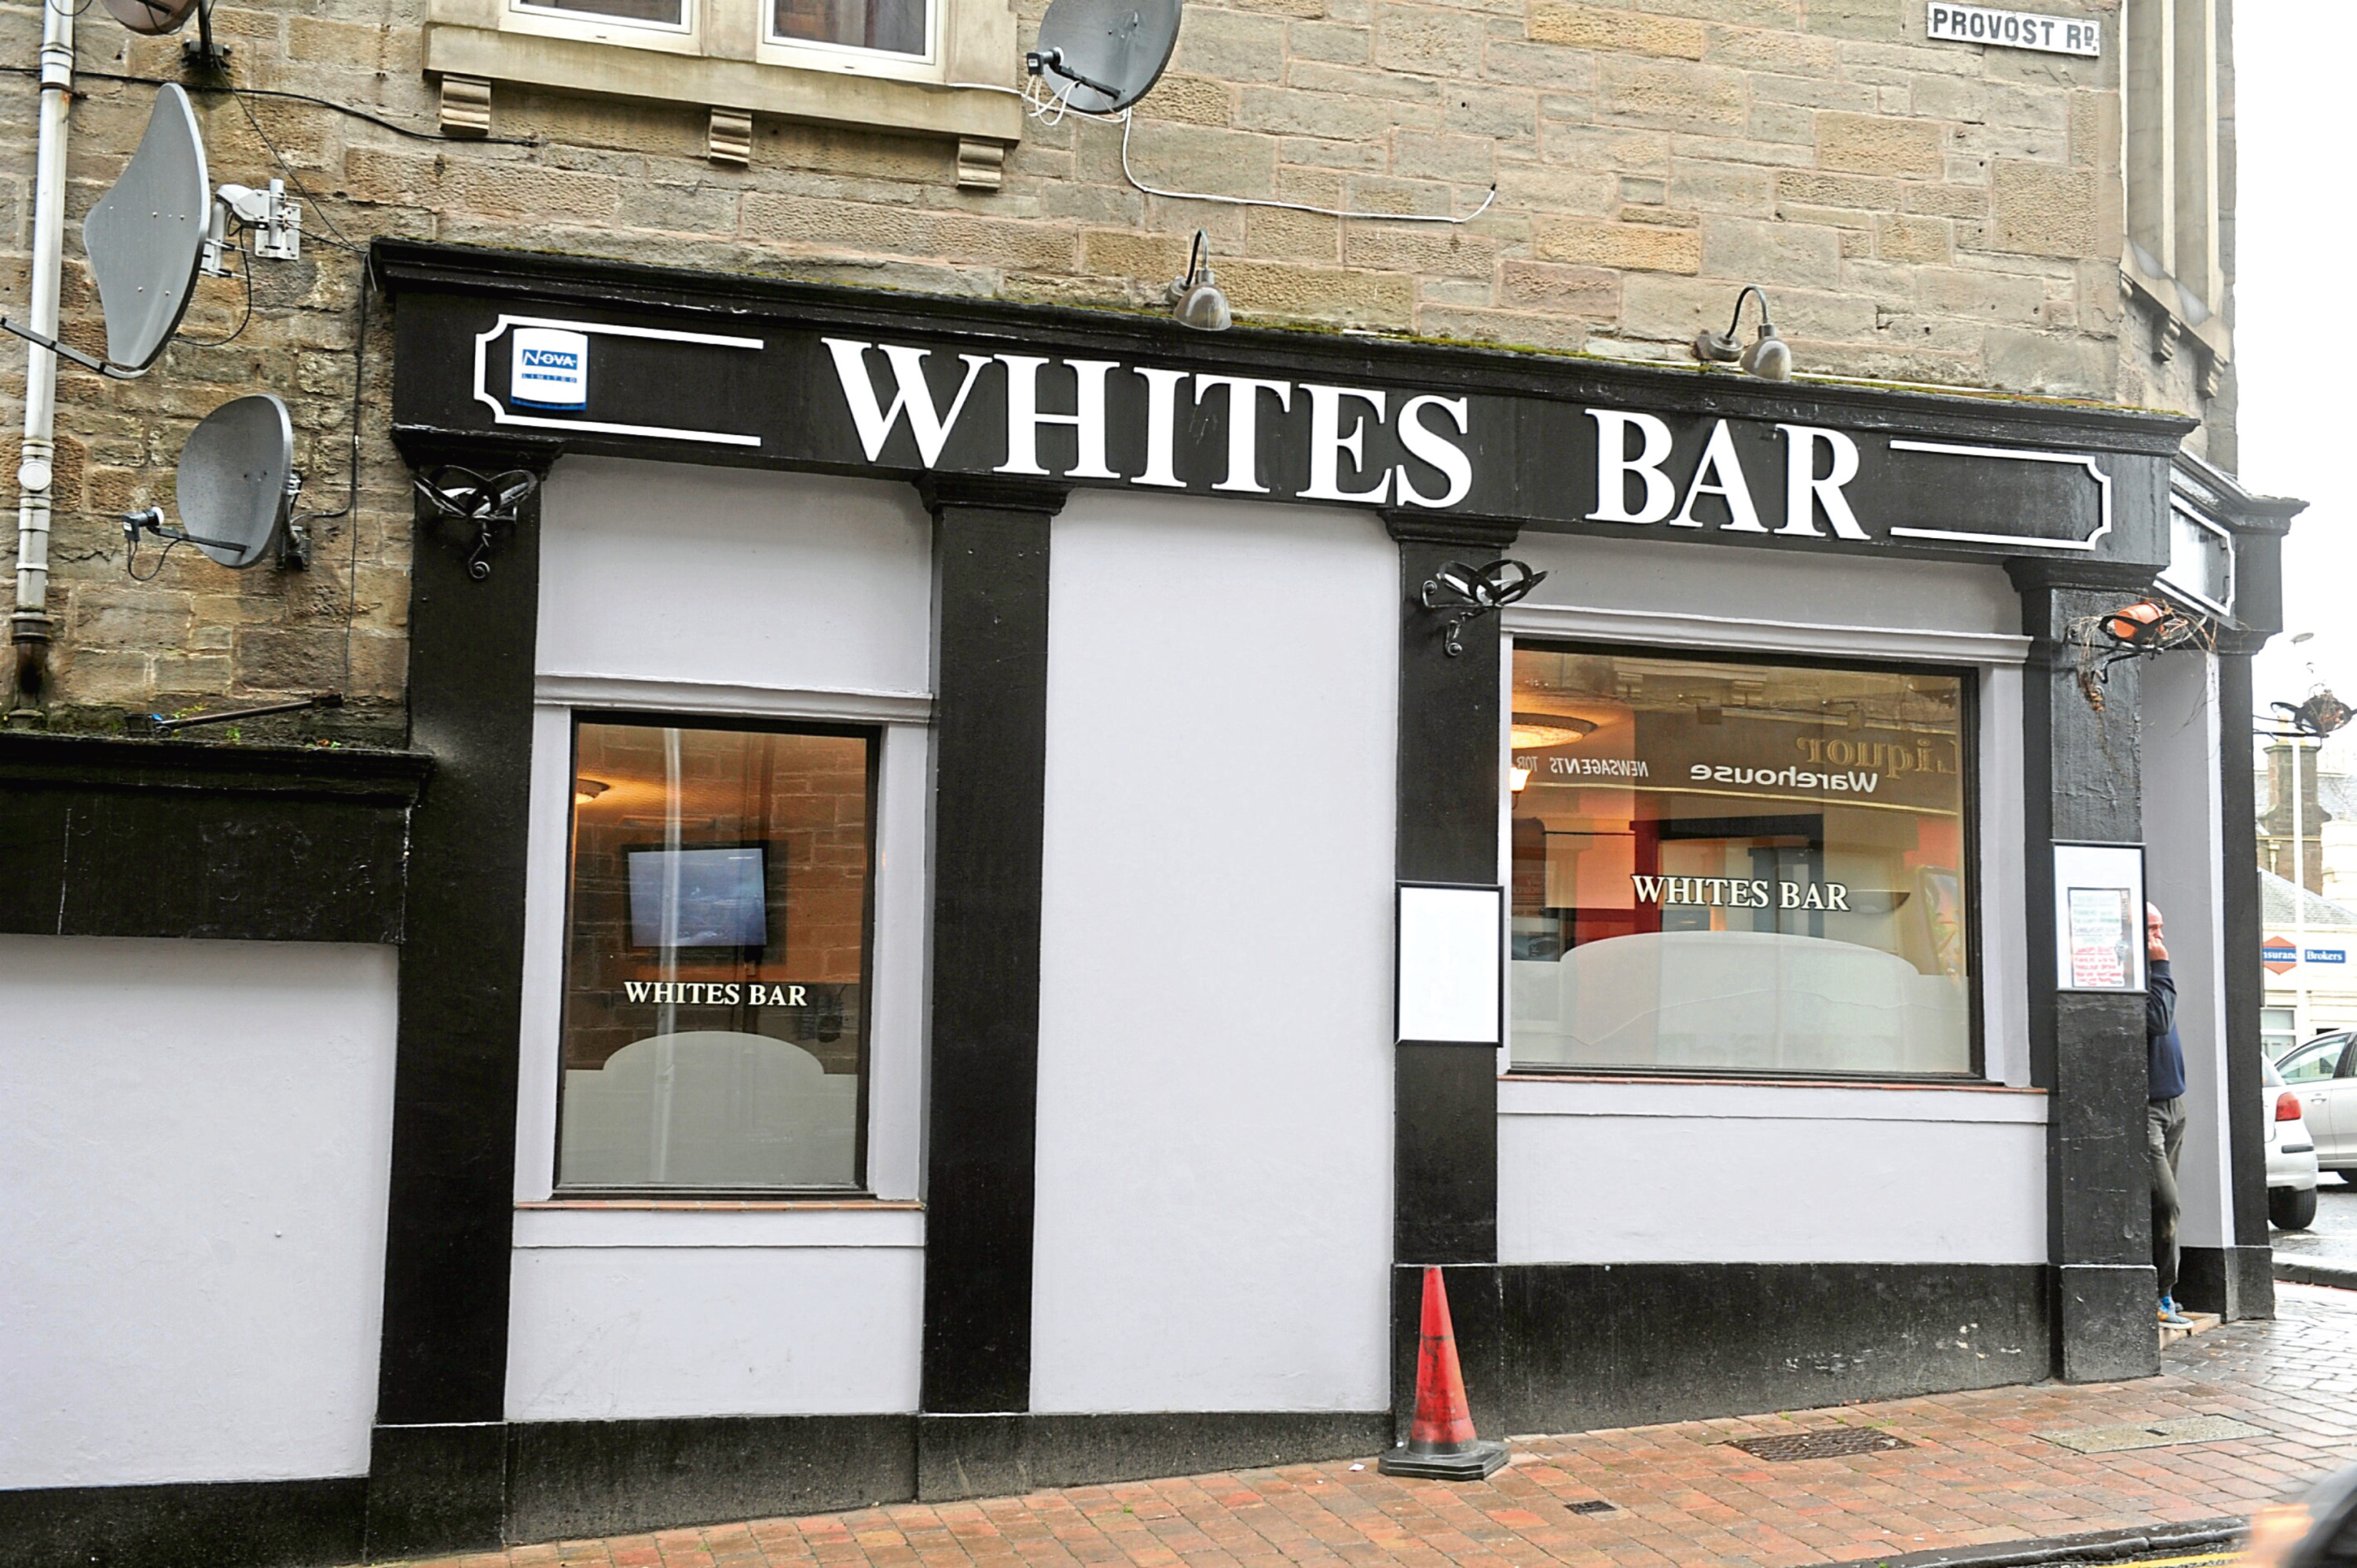 Whites Bar in Provost Road.